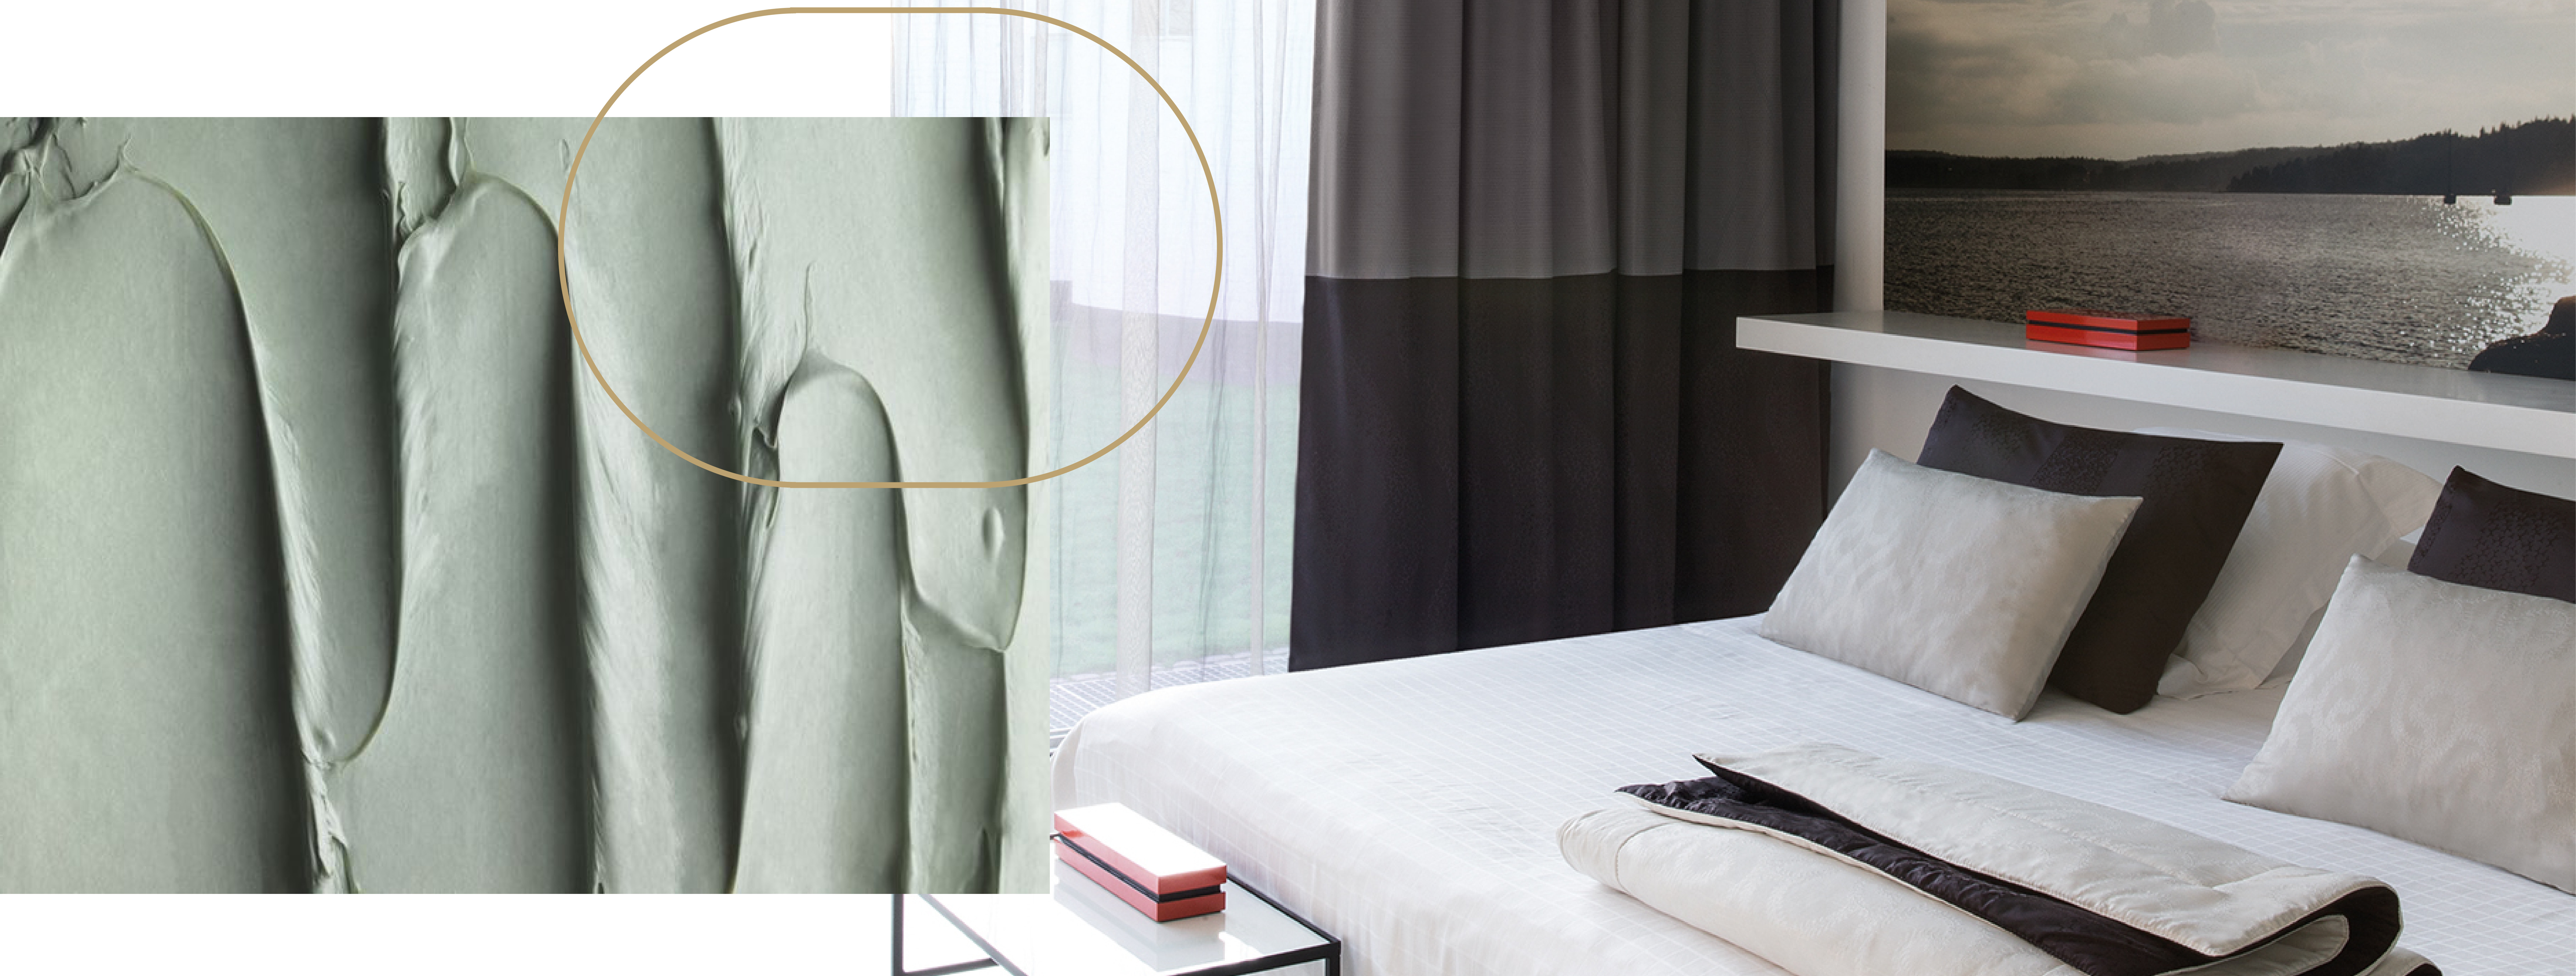 soft coloured upholstery fabric and a neatly made hotel bed